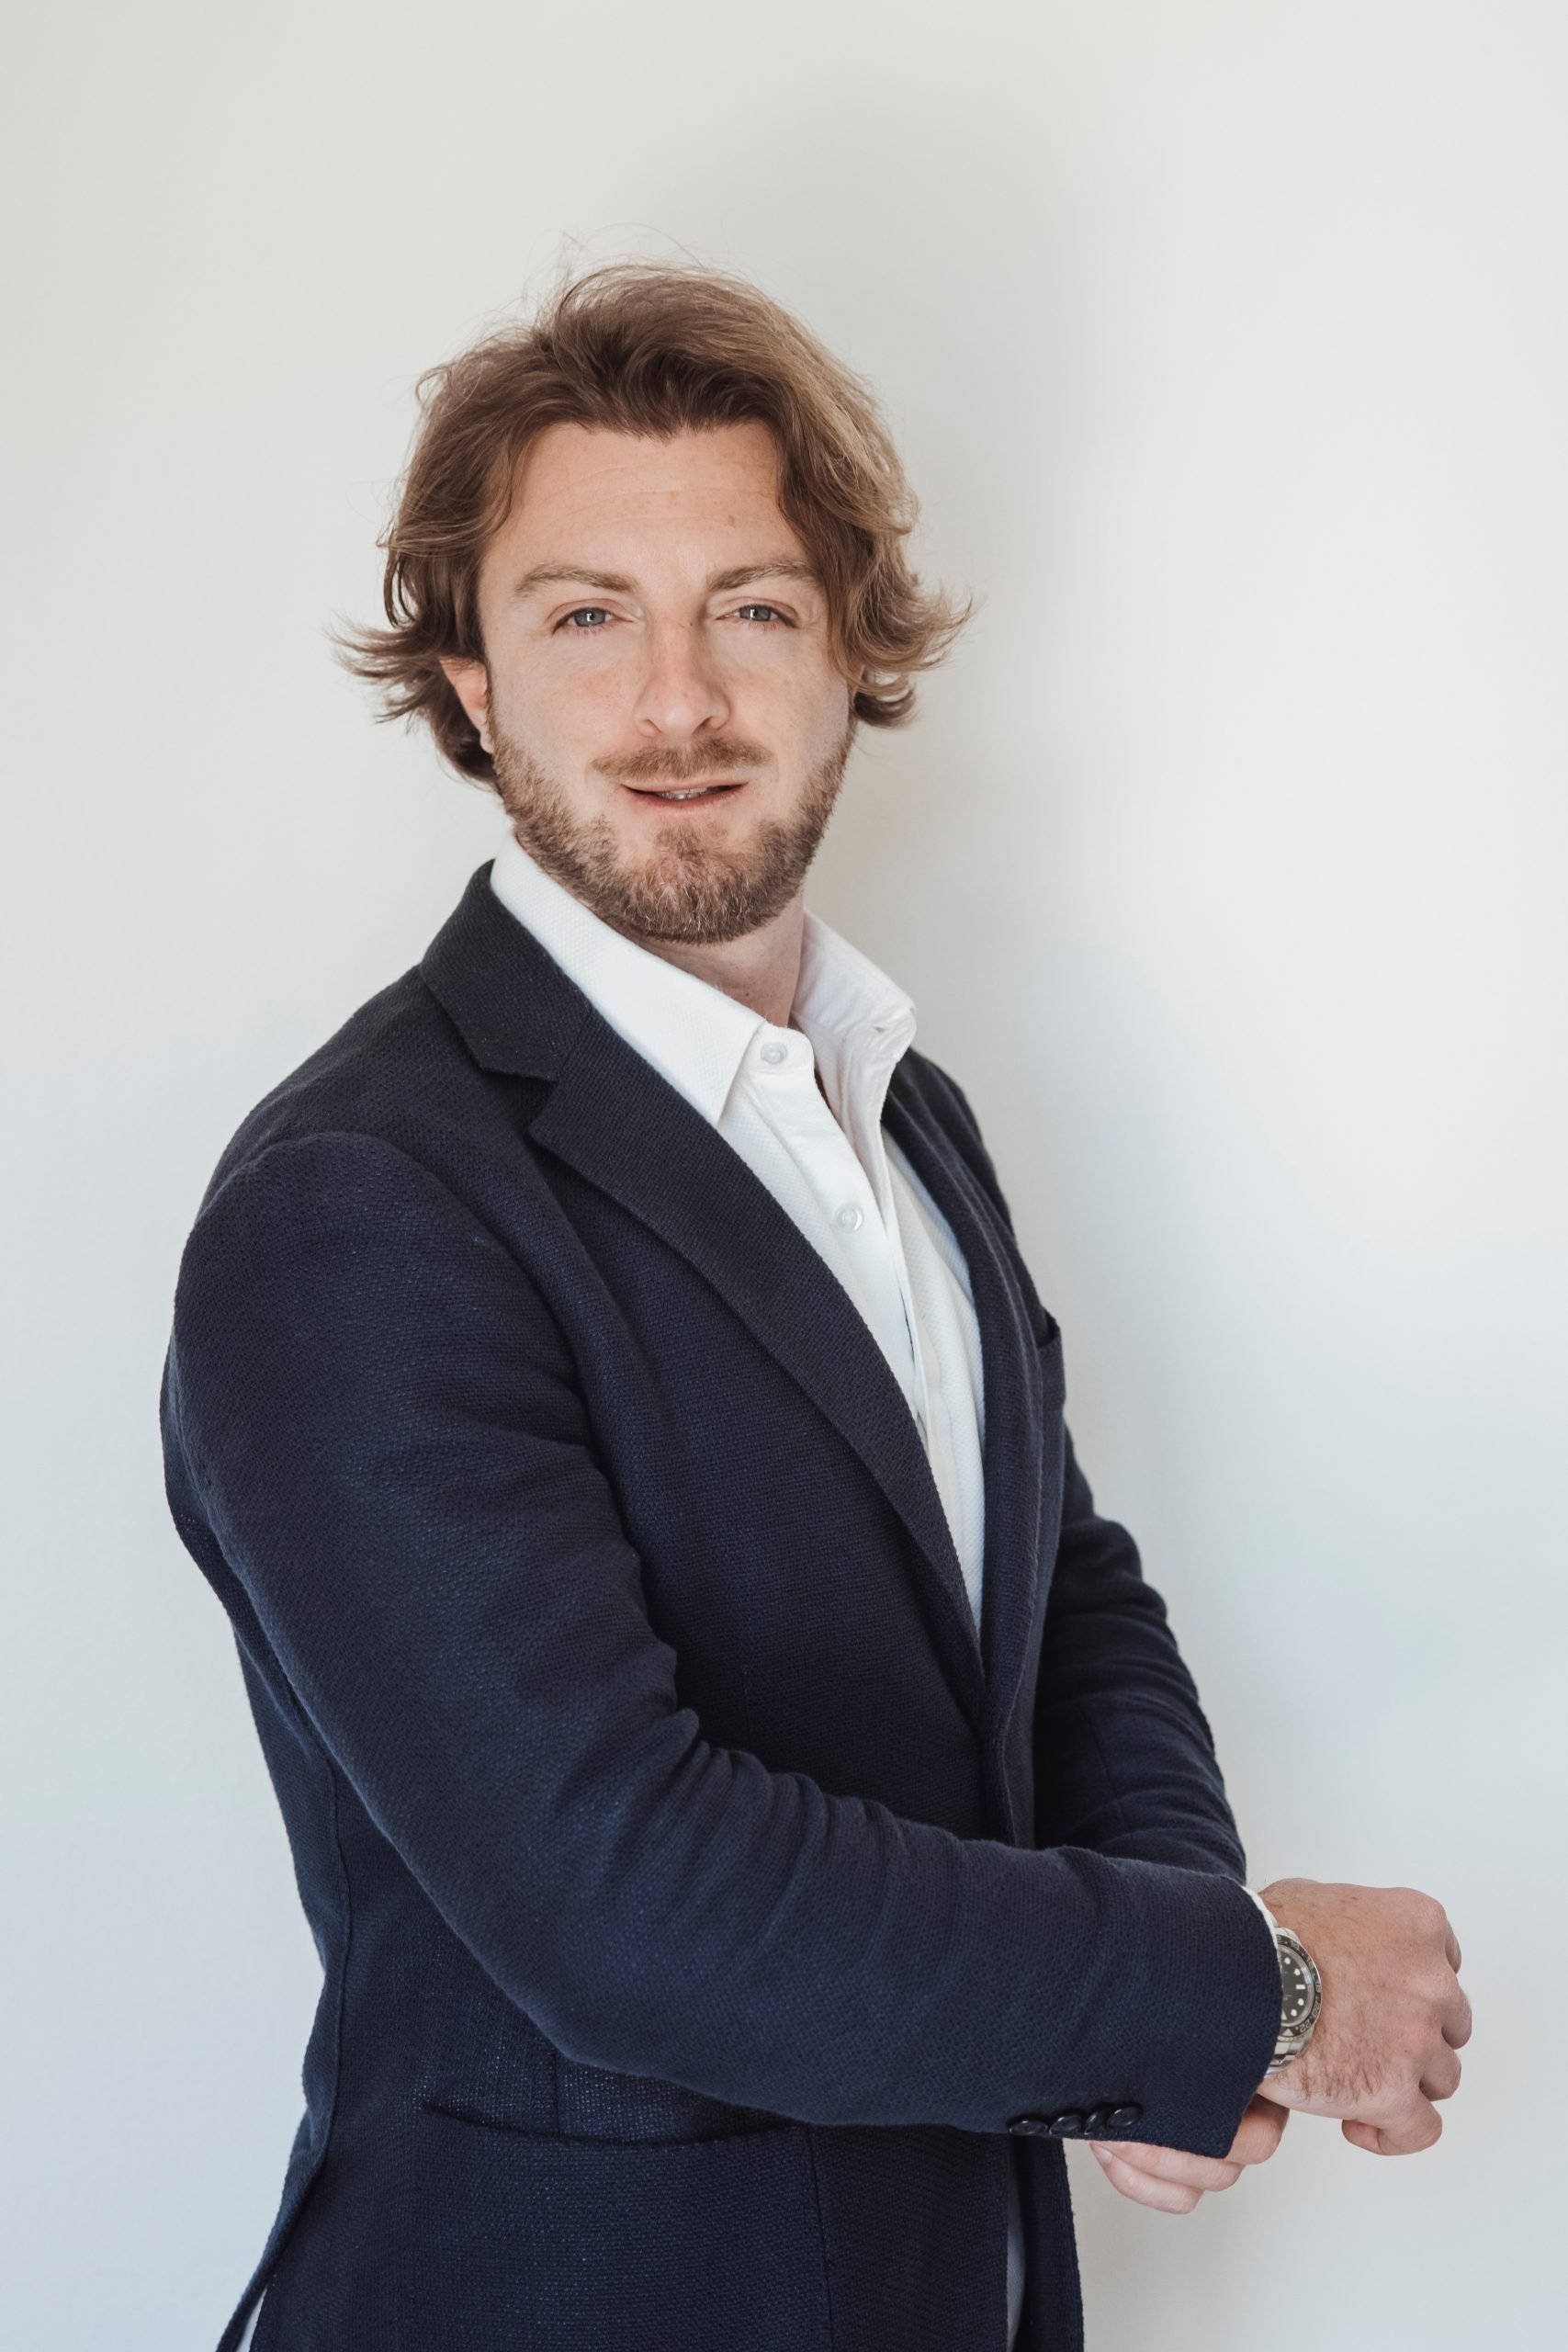 Raffaele Morvillo, Founder & CEO